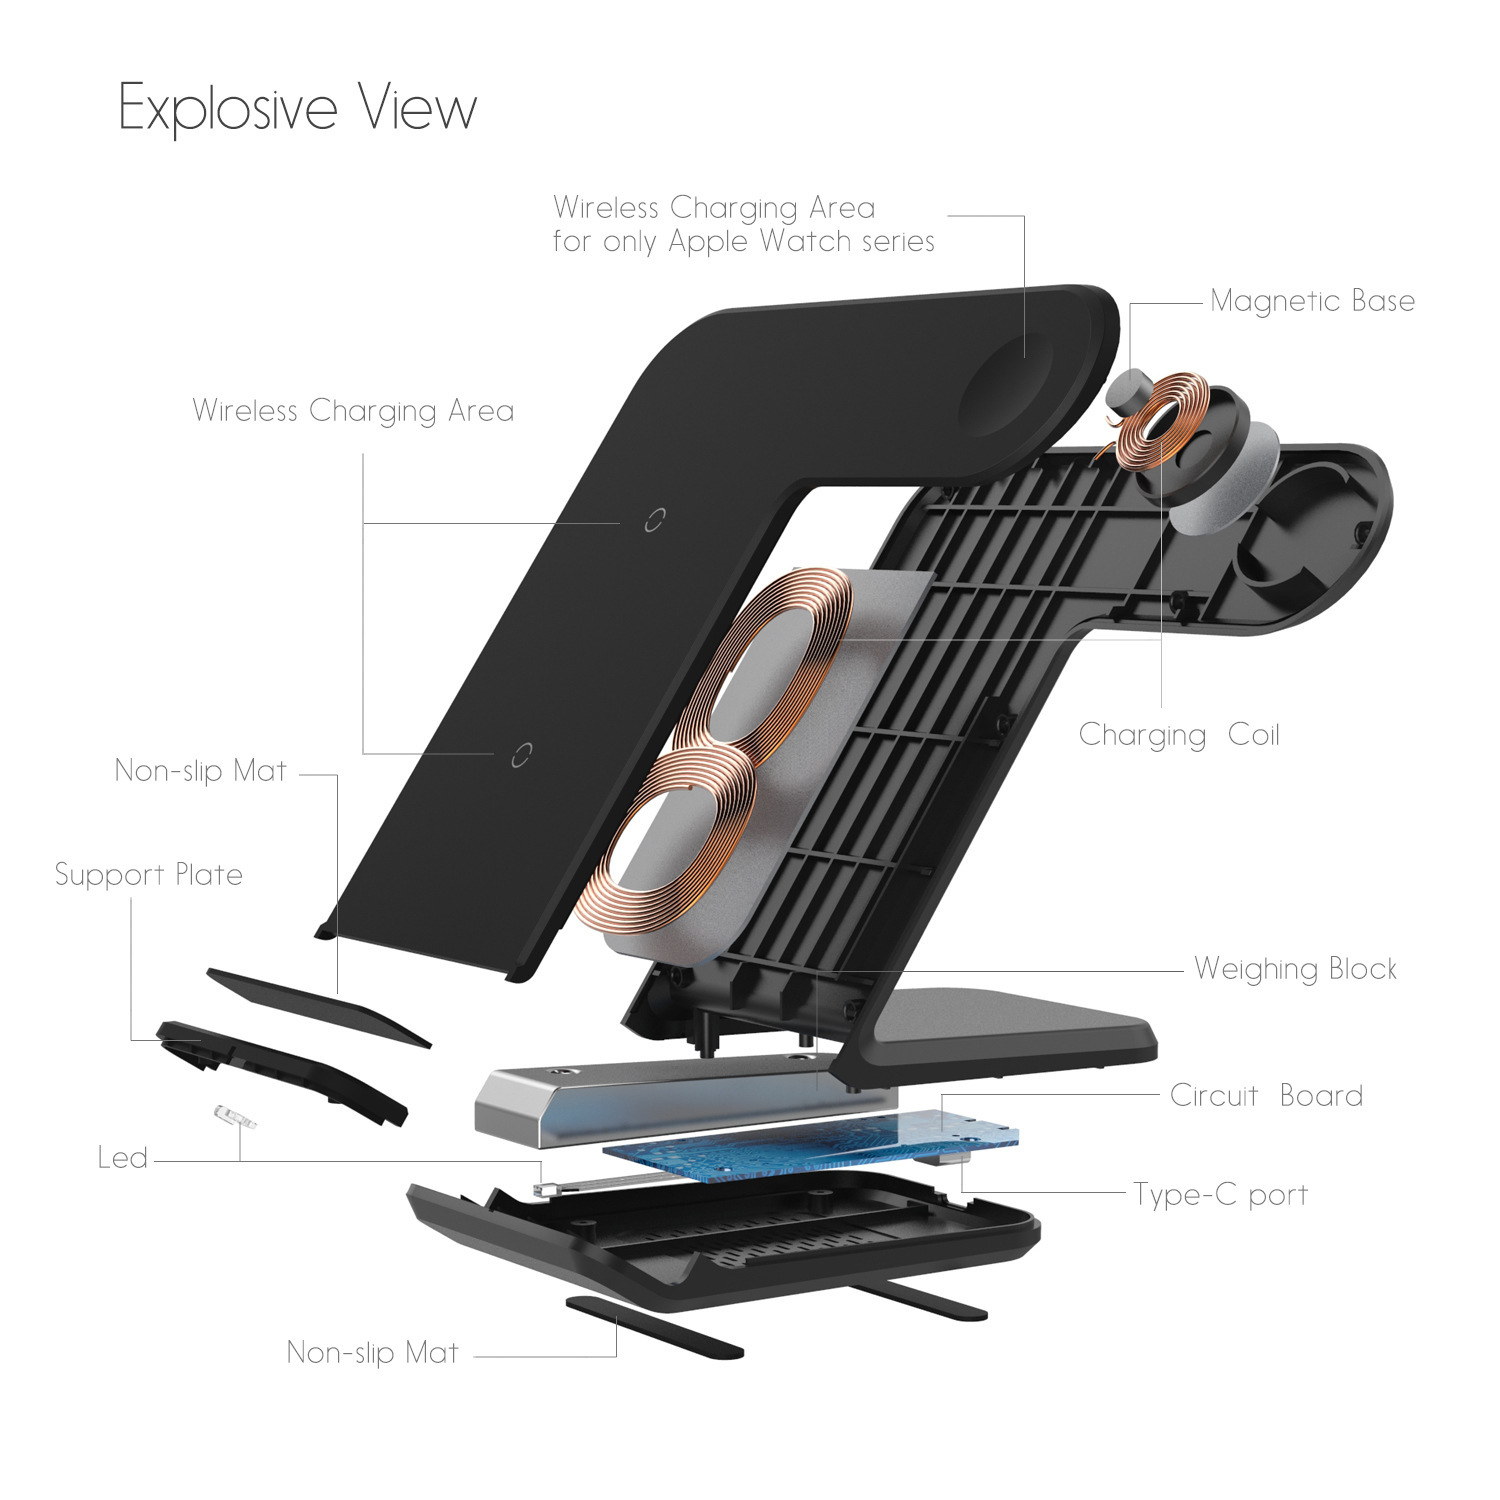 Ape Basics: 2 in 1 wireless charging stand Pro image